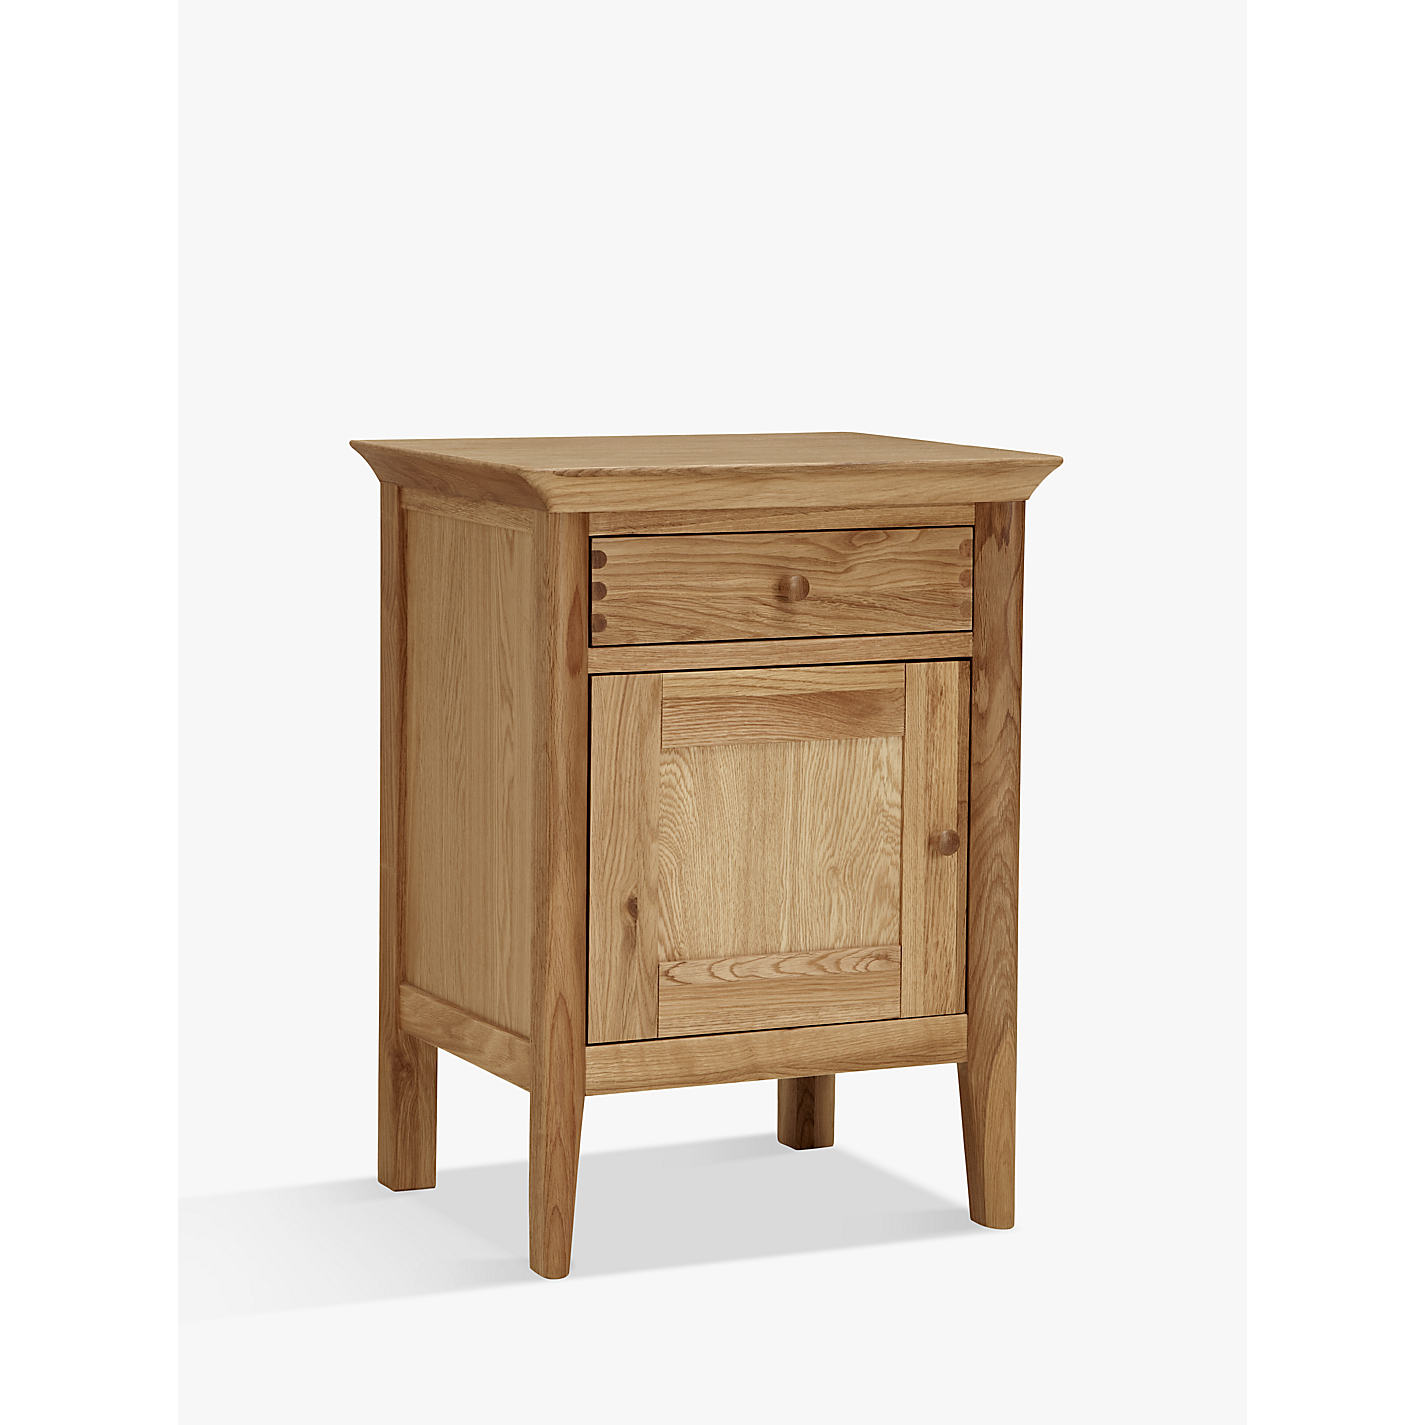 ... Buy John Lewis Essence 1 Door Bedside Table, Oak Online at  johnlewis.com ...